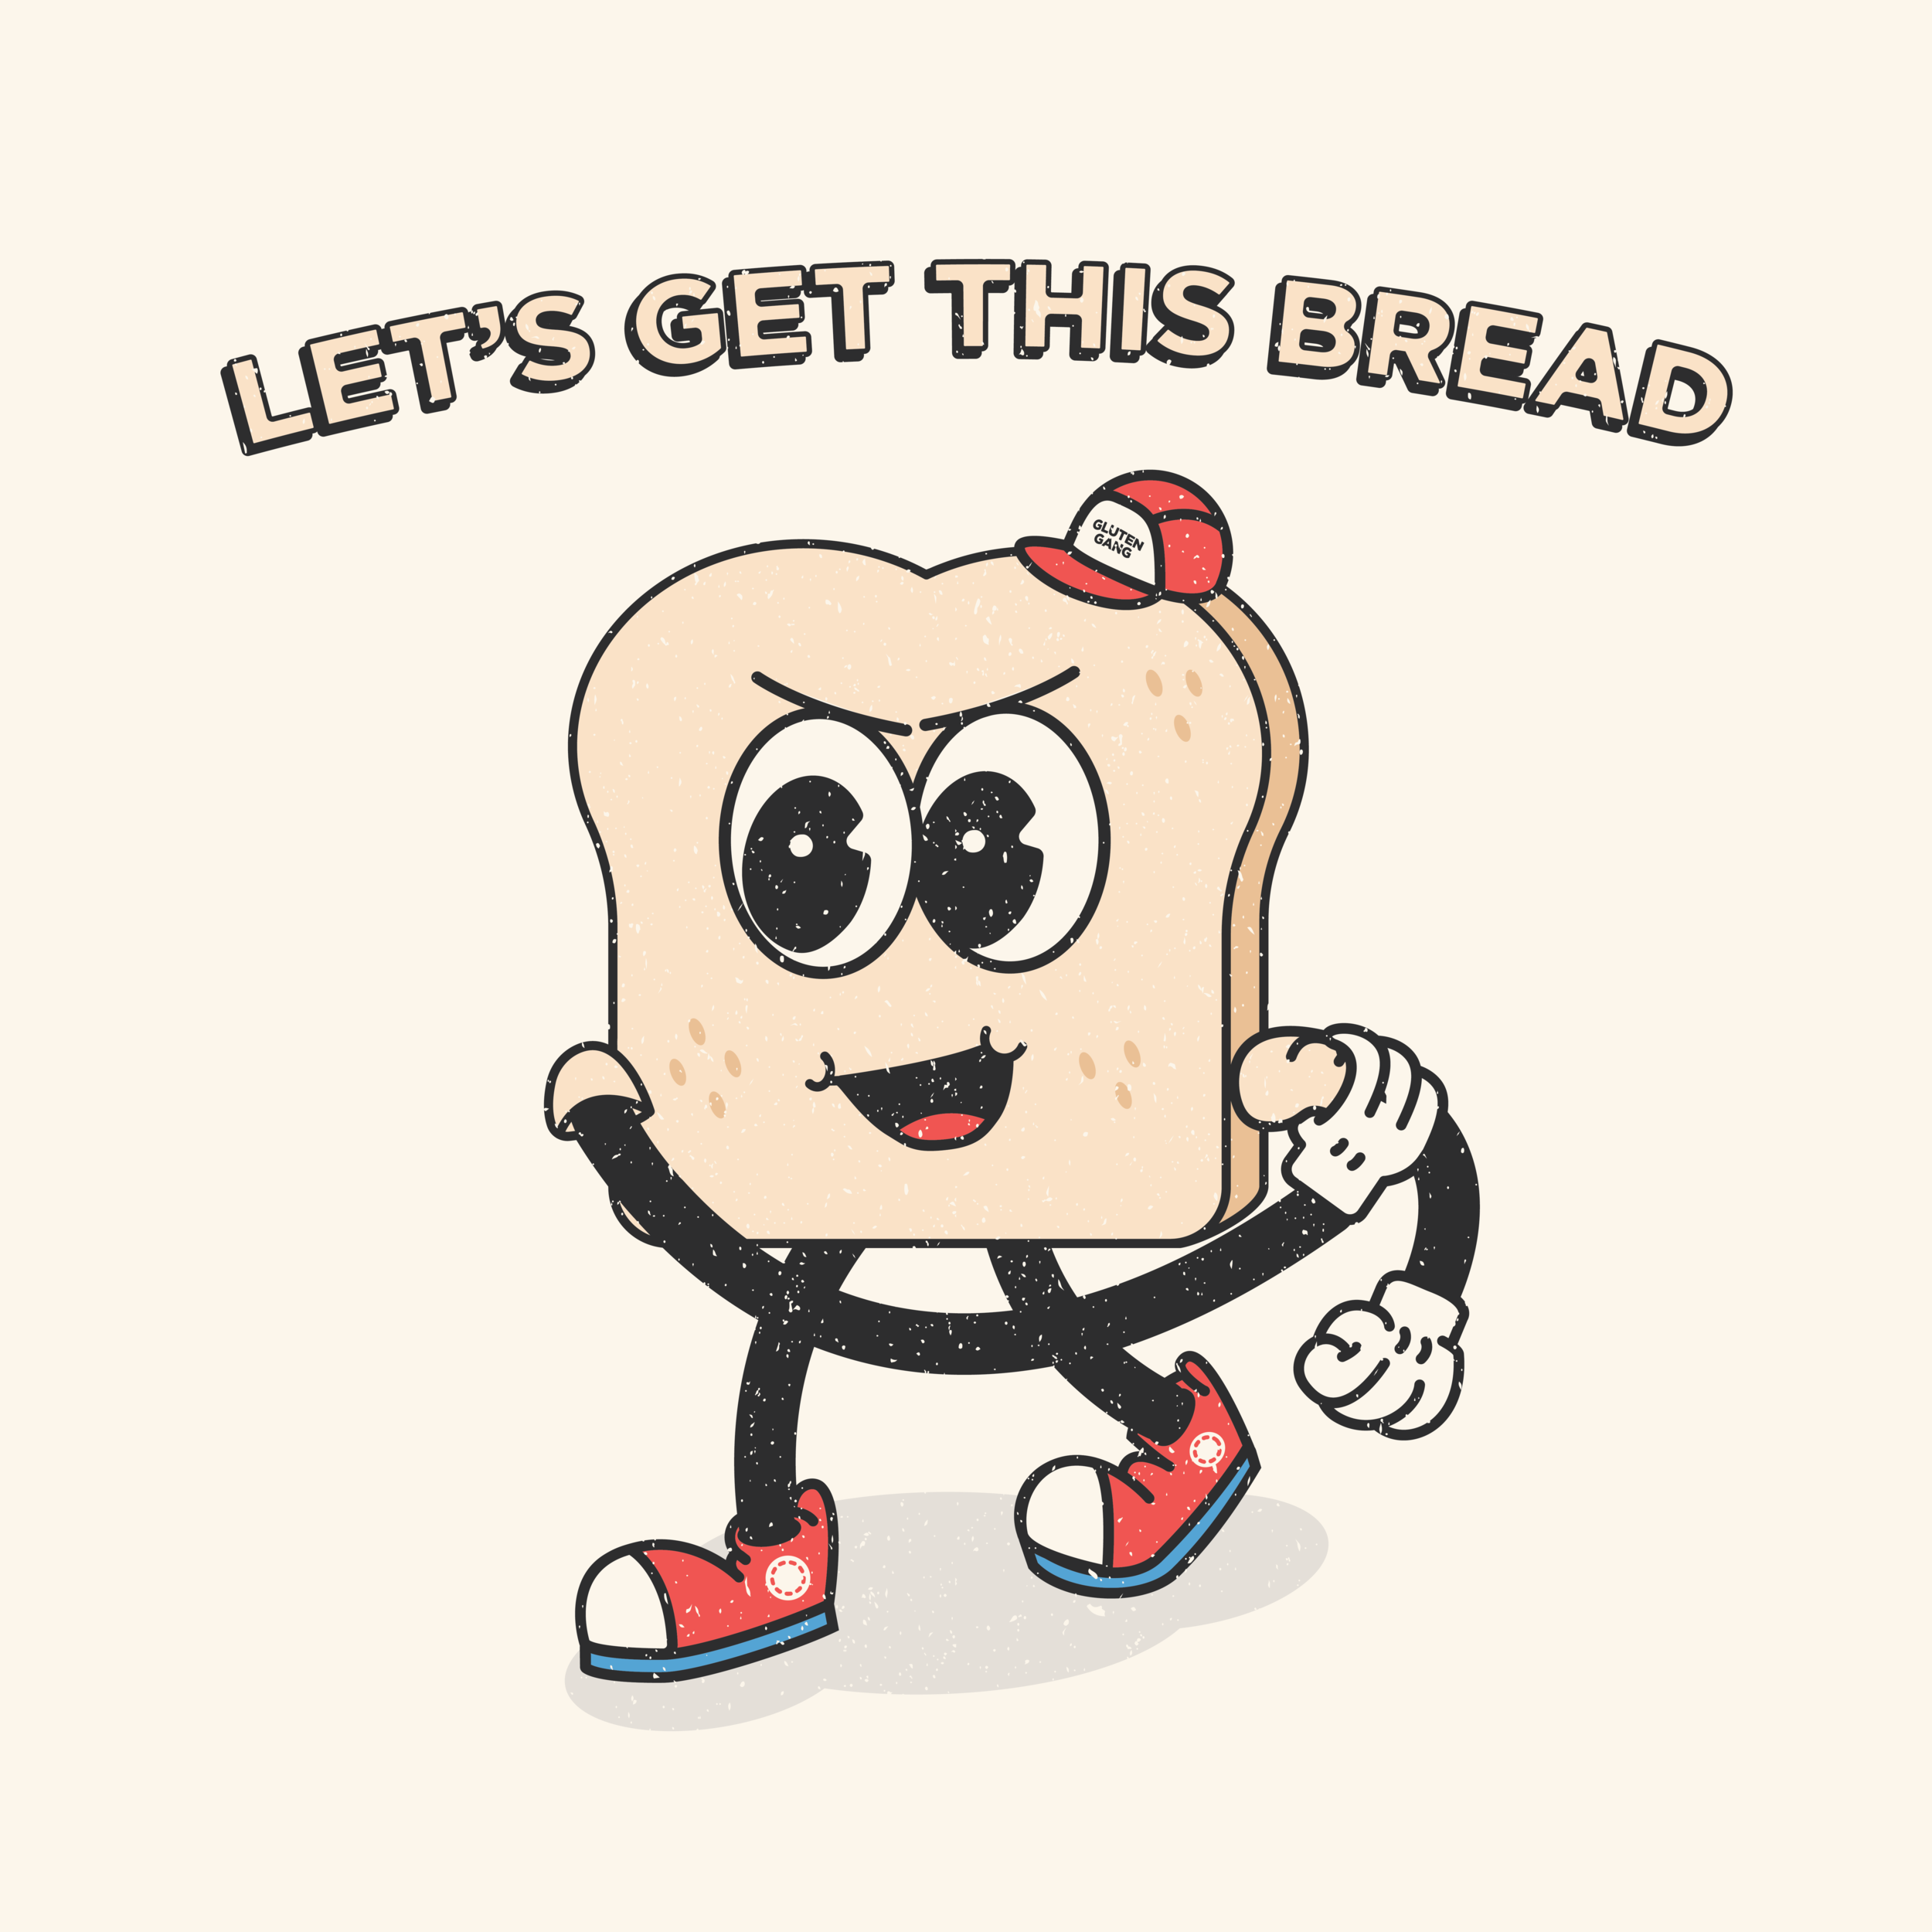 bread-01.png